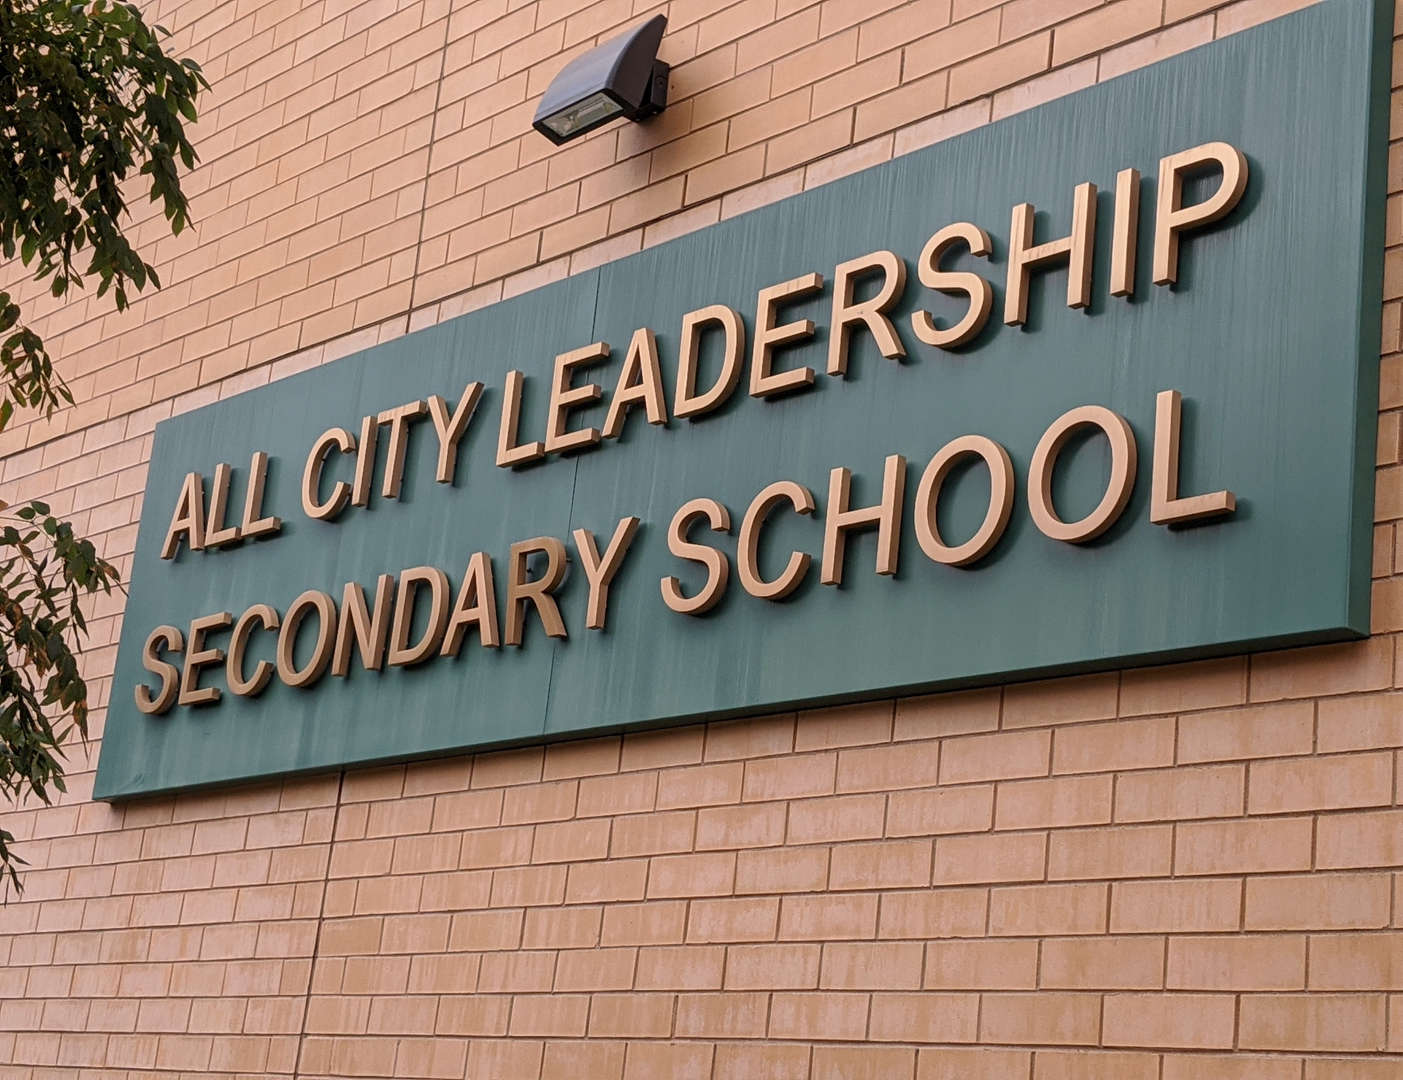 All City Leadership Secondary School sign